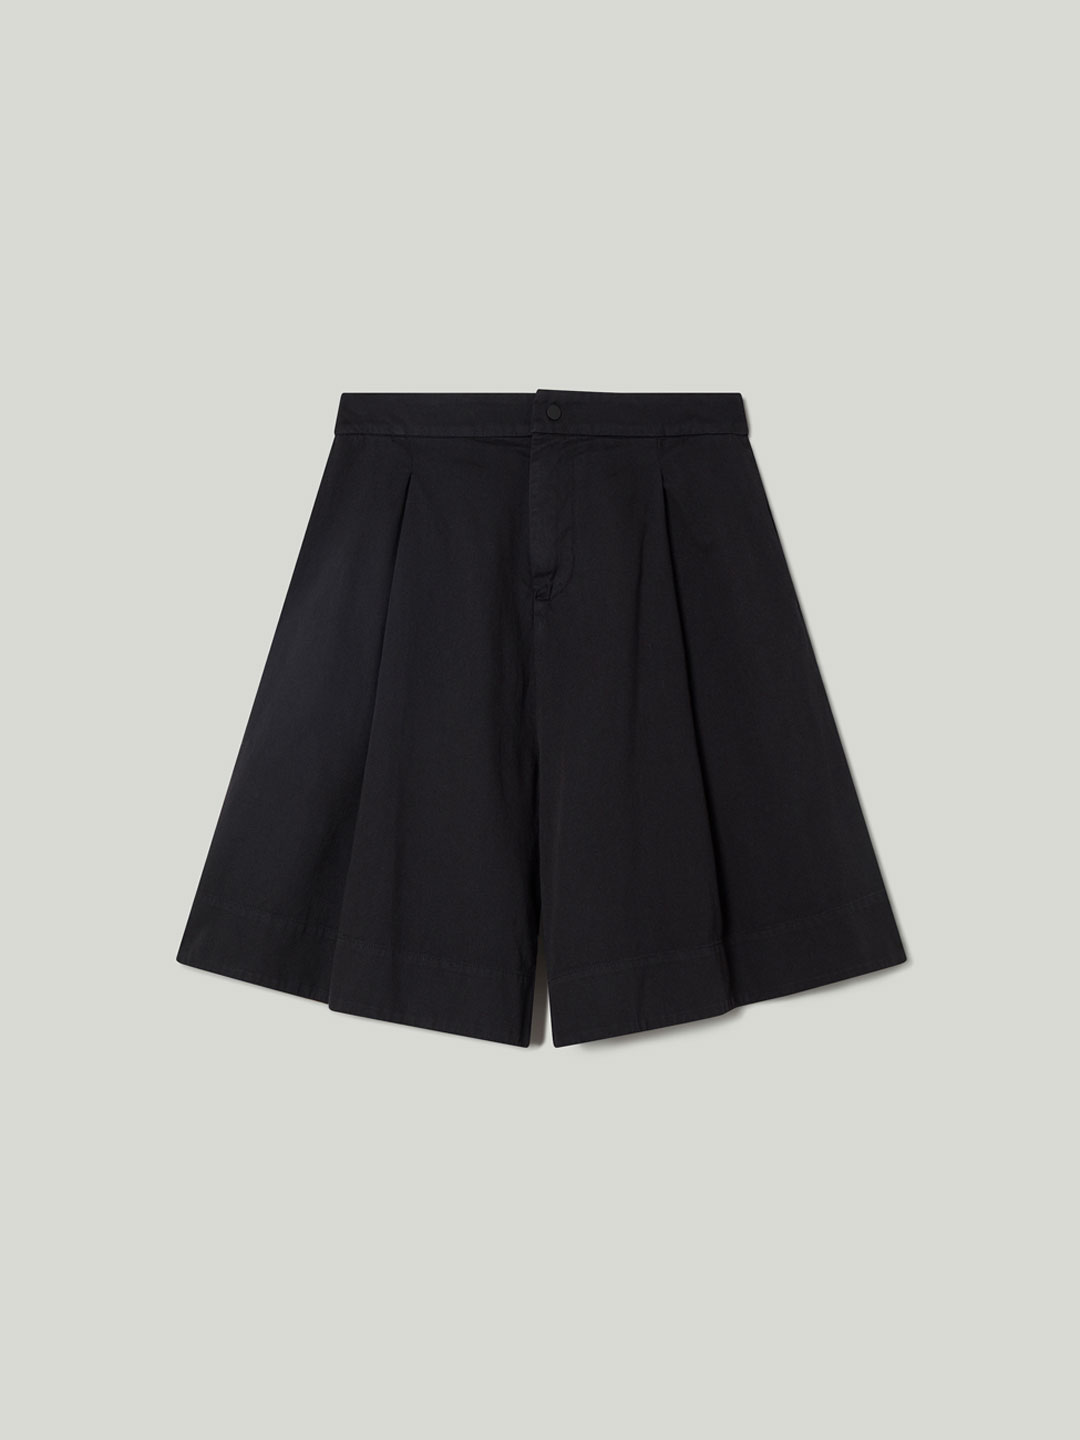 The Mudlark Shorts / Flint - Black